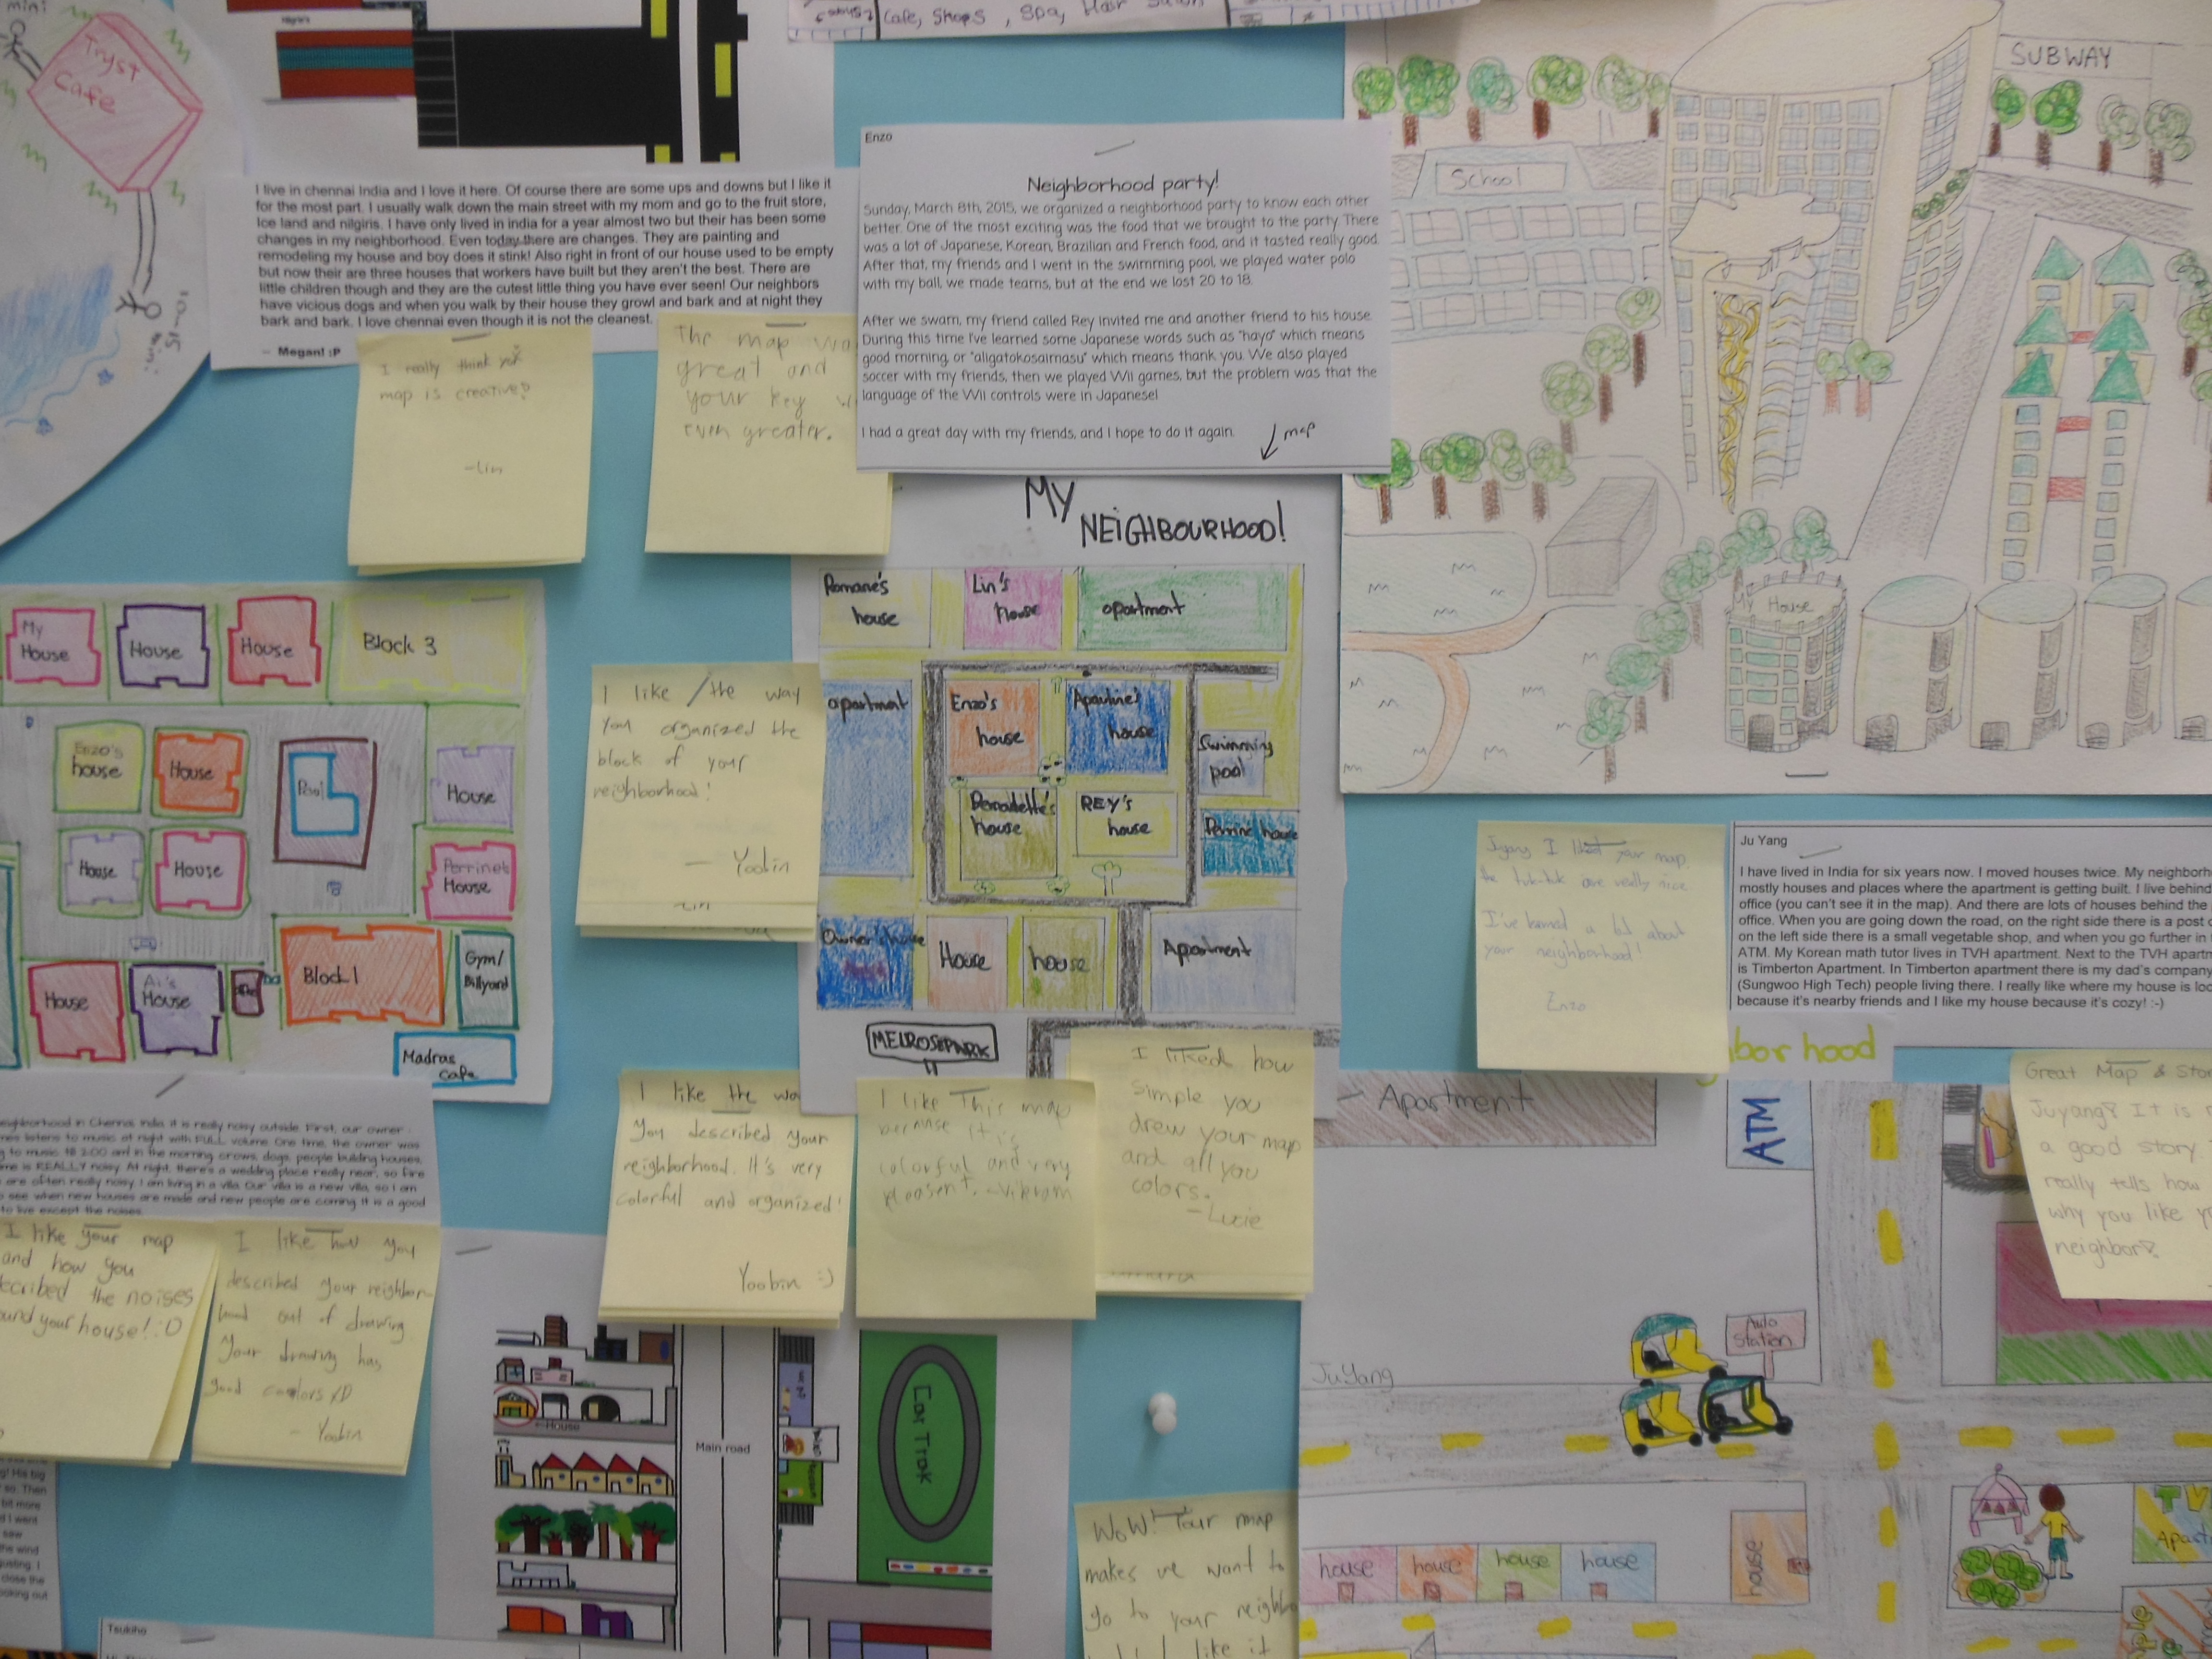 Gallery Walk Neighborhood Mapping Amp Storytelling Out Of Eden Project